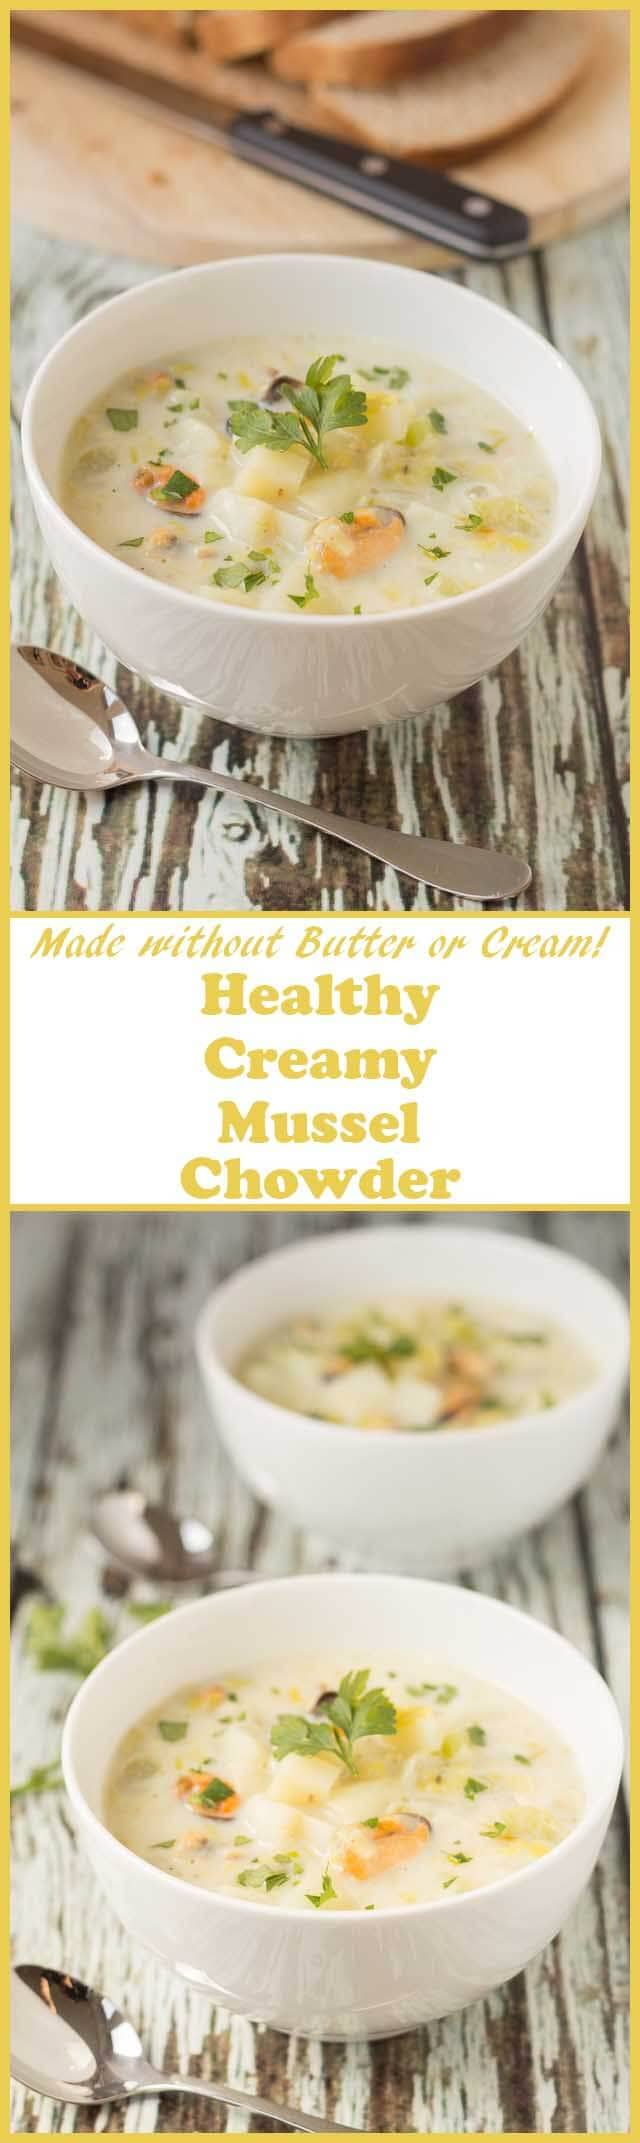 Healthy mussel chowder is a creamy delicious seafood chowder made without butter or cream. This thick and chunky seafood soup is one amazing budget quick healthy meal.